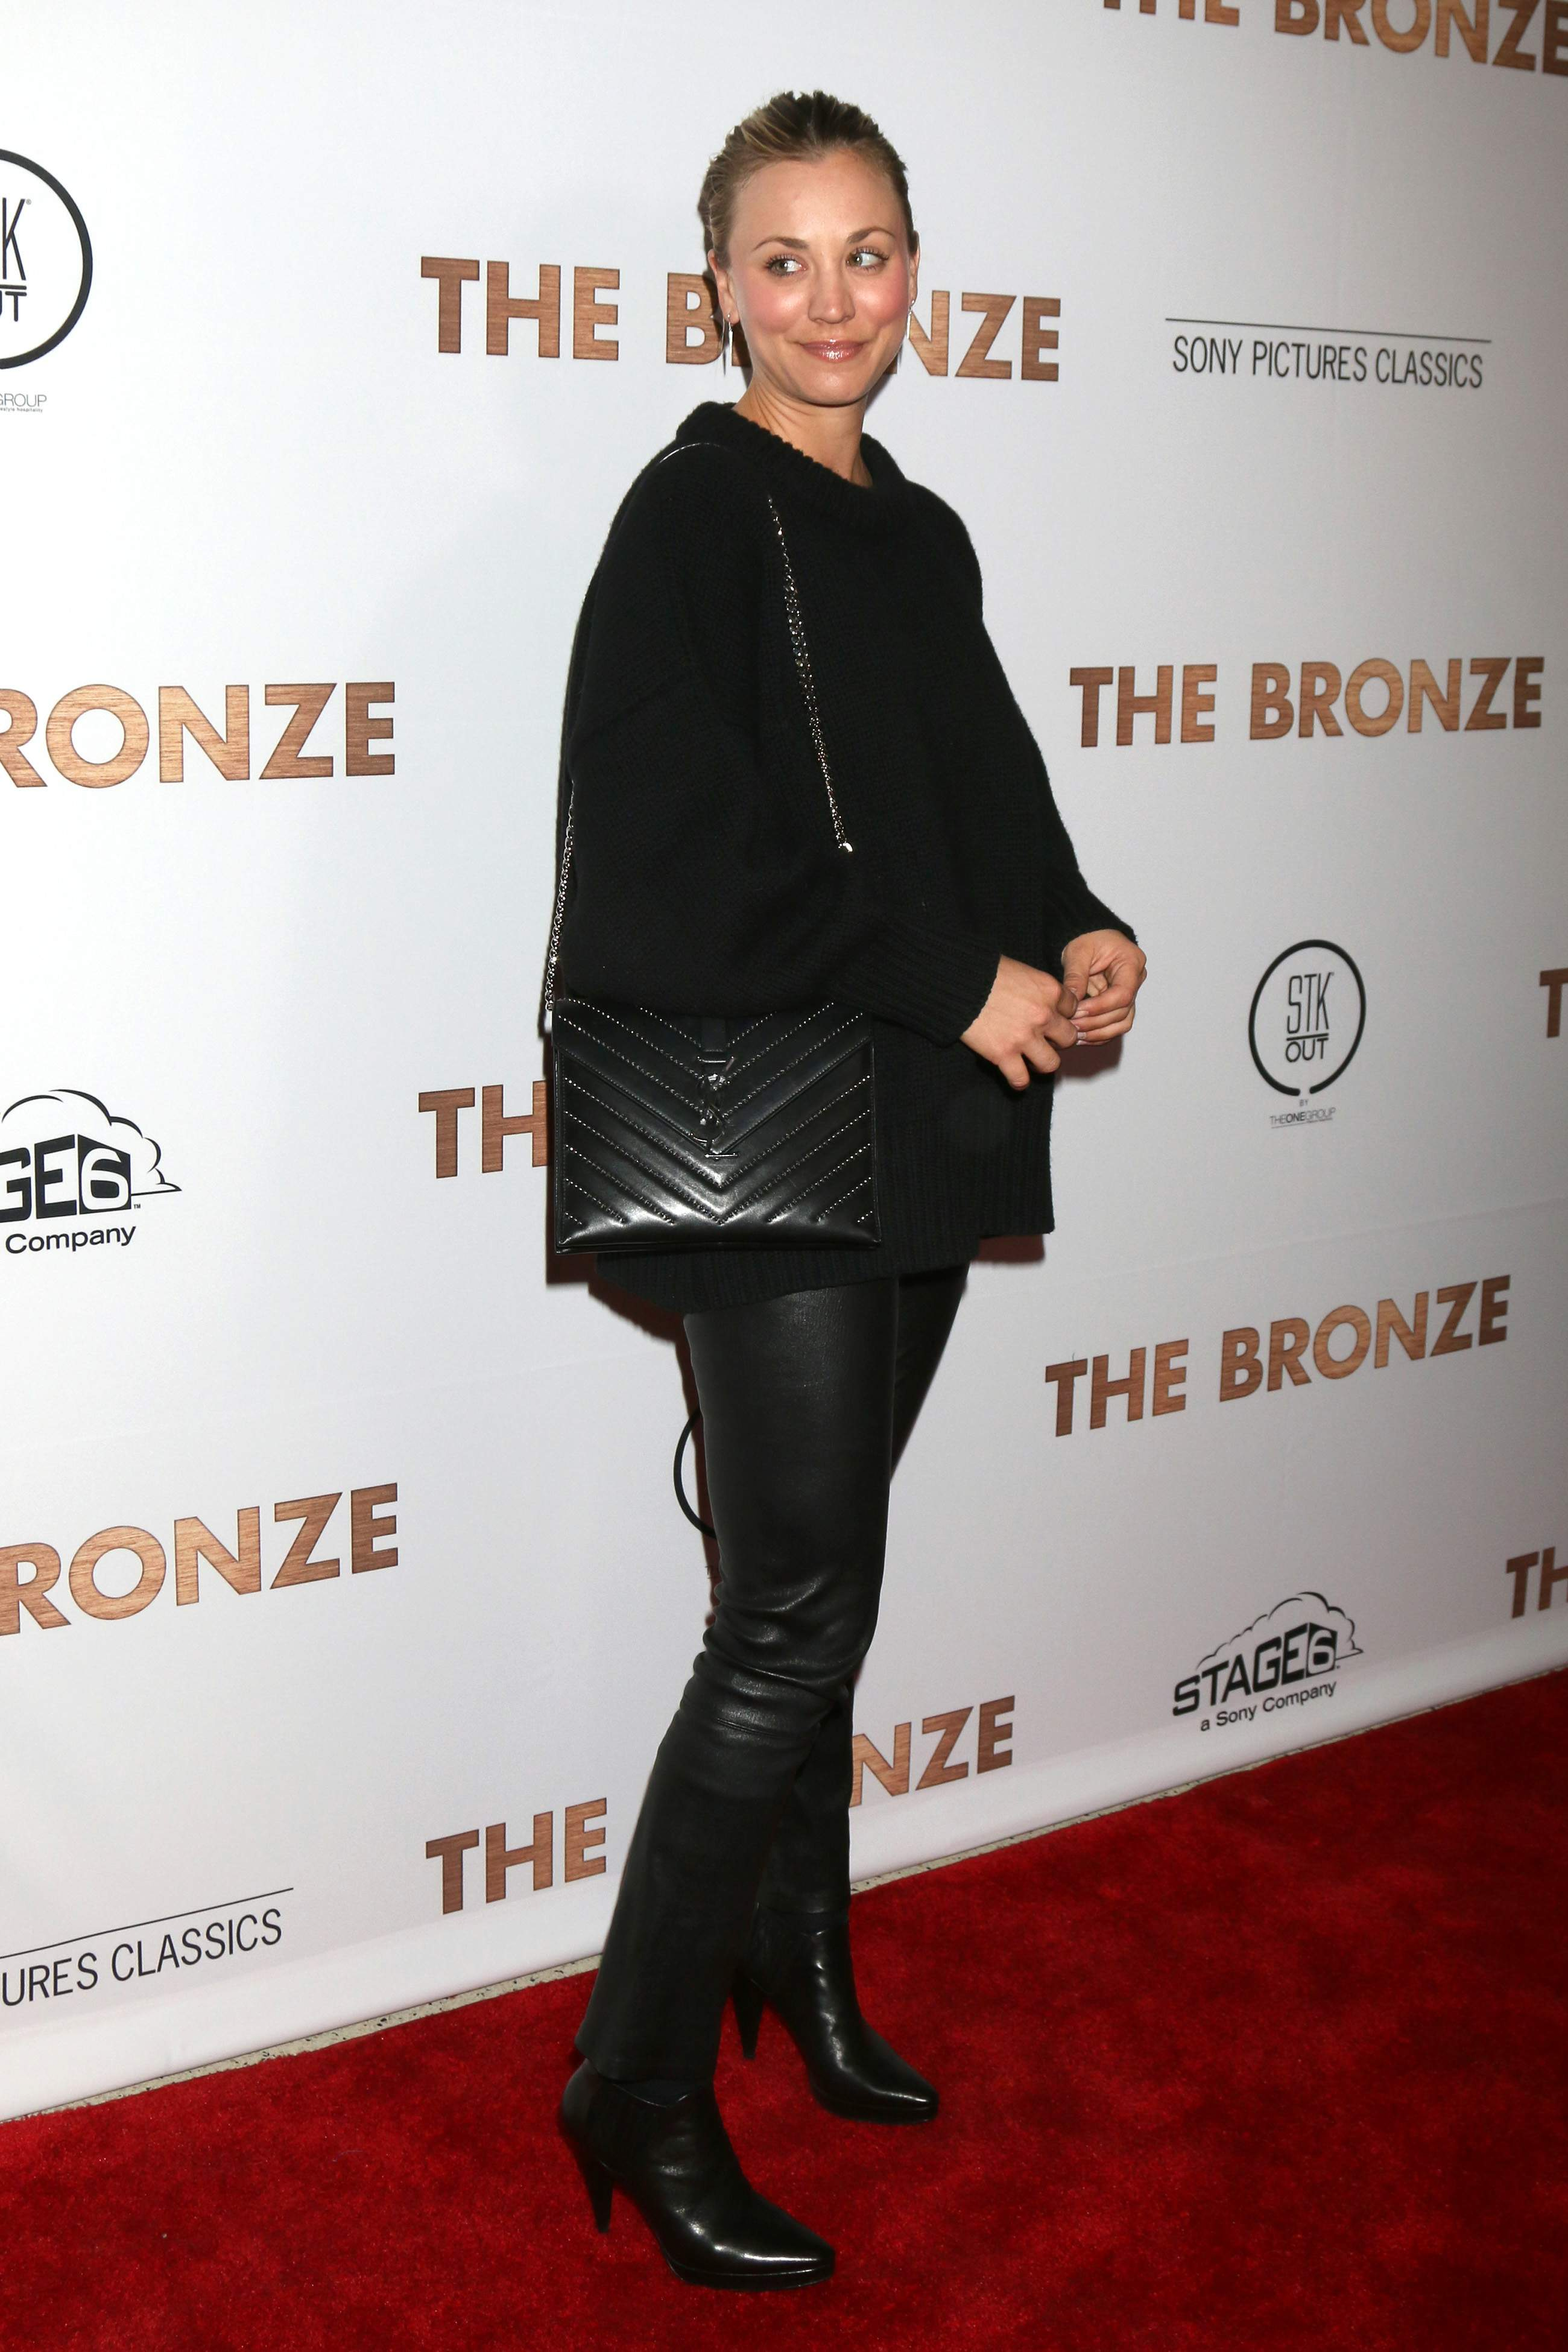 Kaley Cuoco attends the premiere of The Bronze